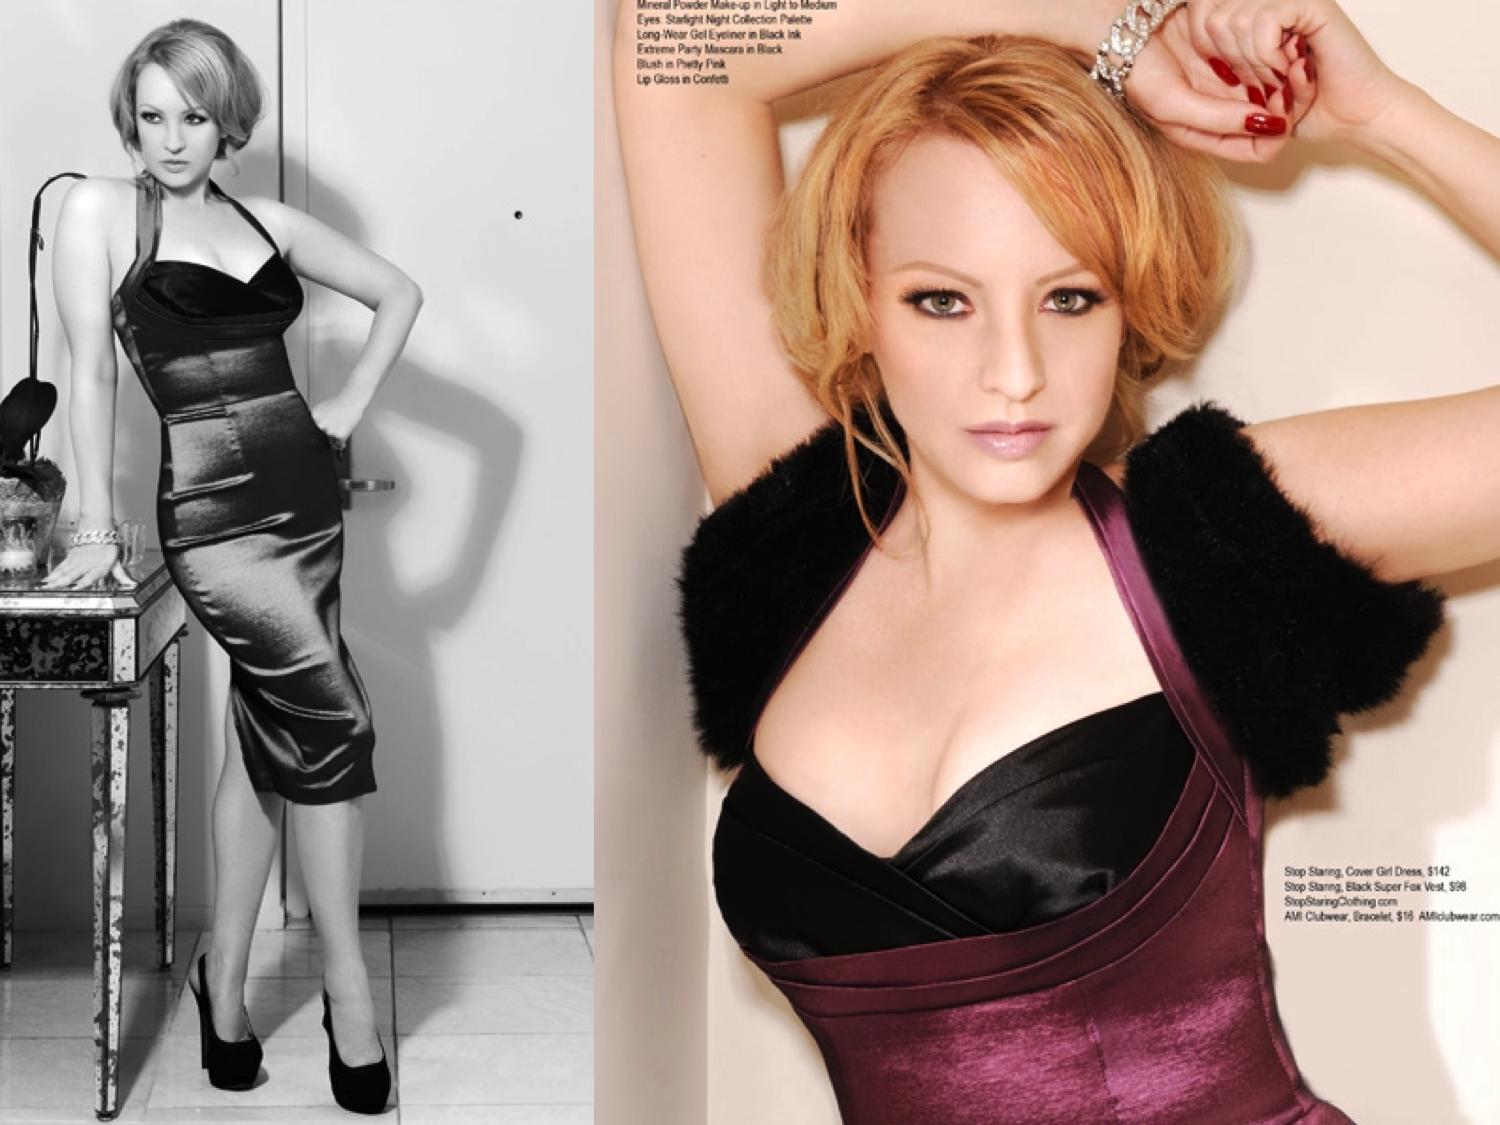 Opinion you sexy pictures of wendi mclendon covey consider, what